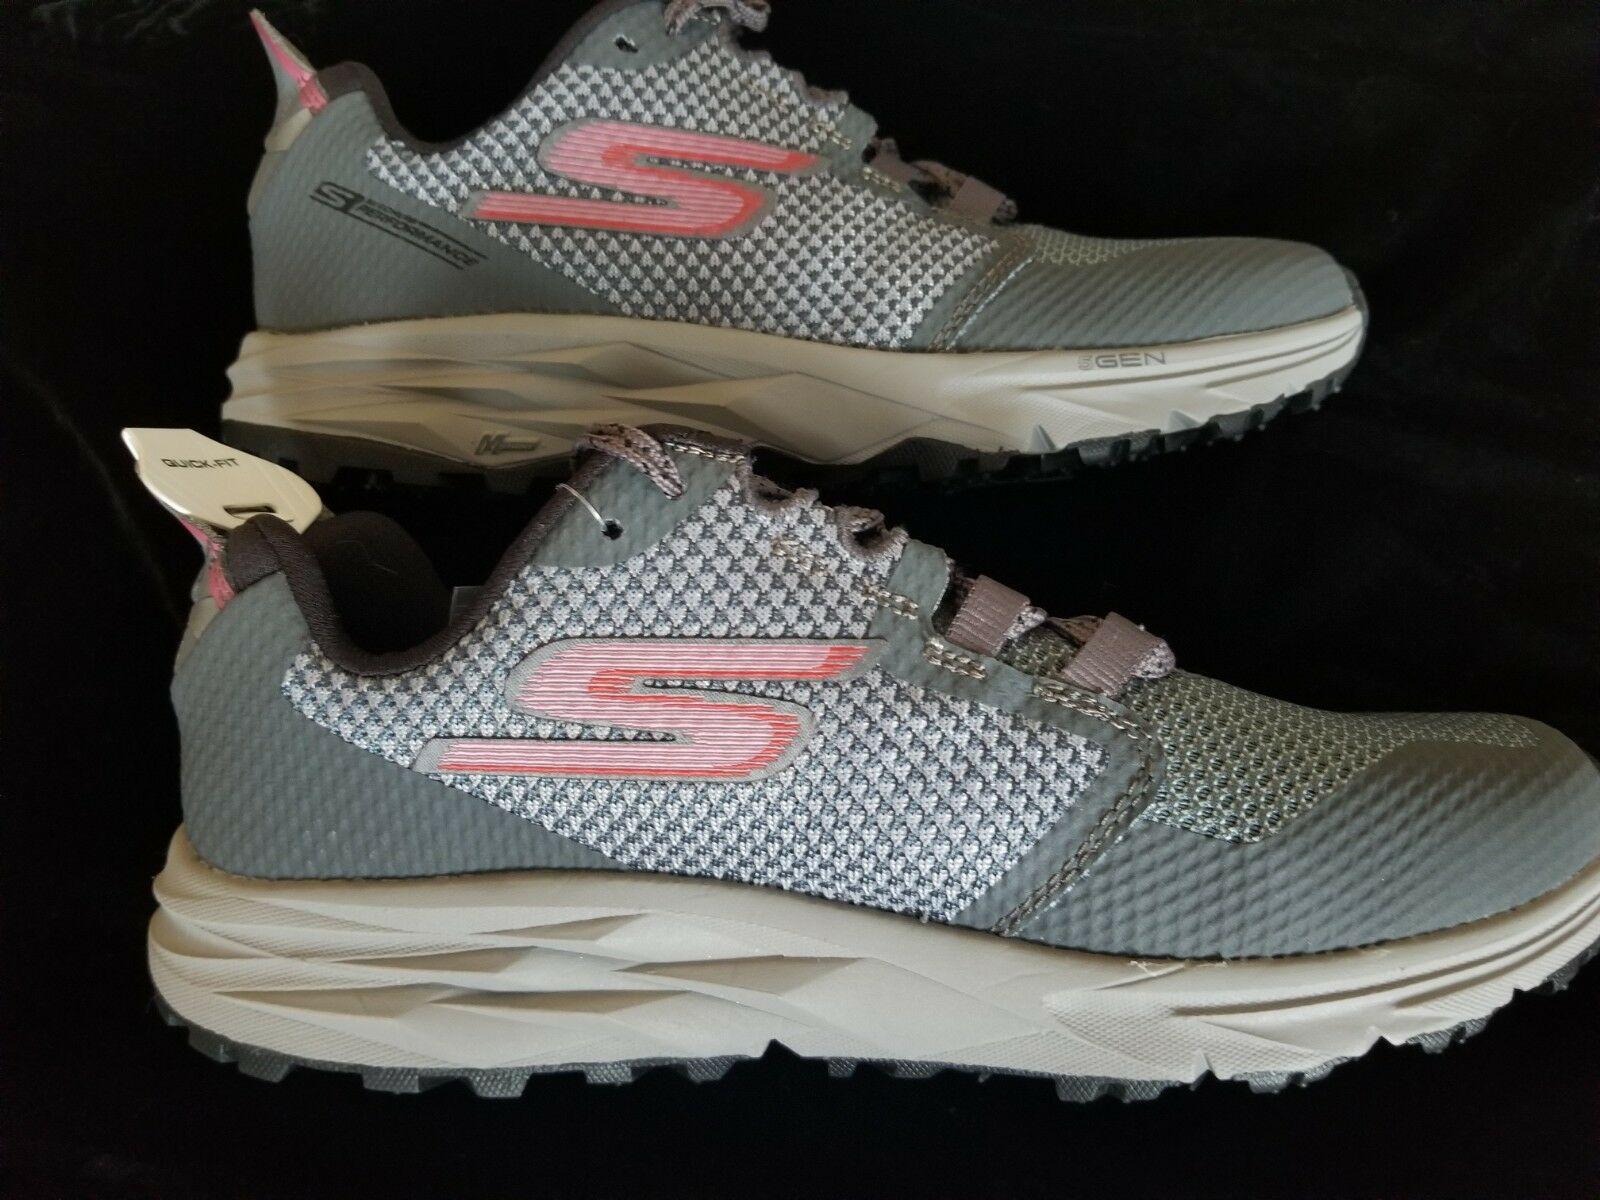 Brand New Skechers Go Trail 2 Running shoes - womens Size 9.5